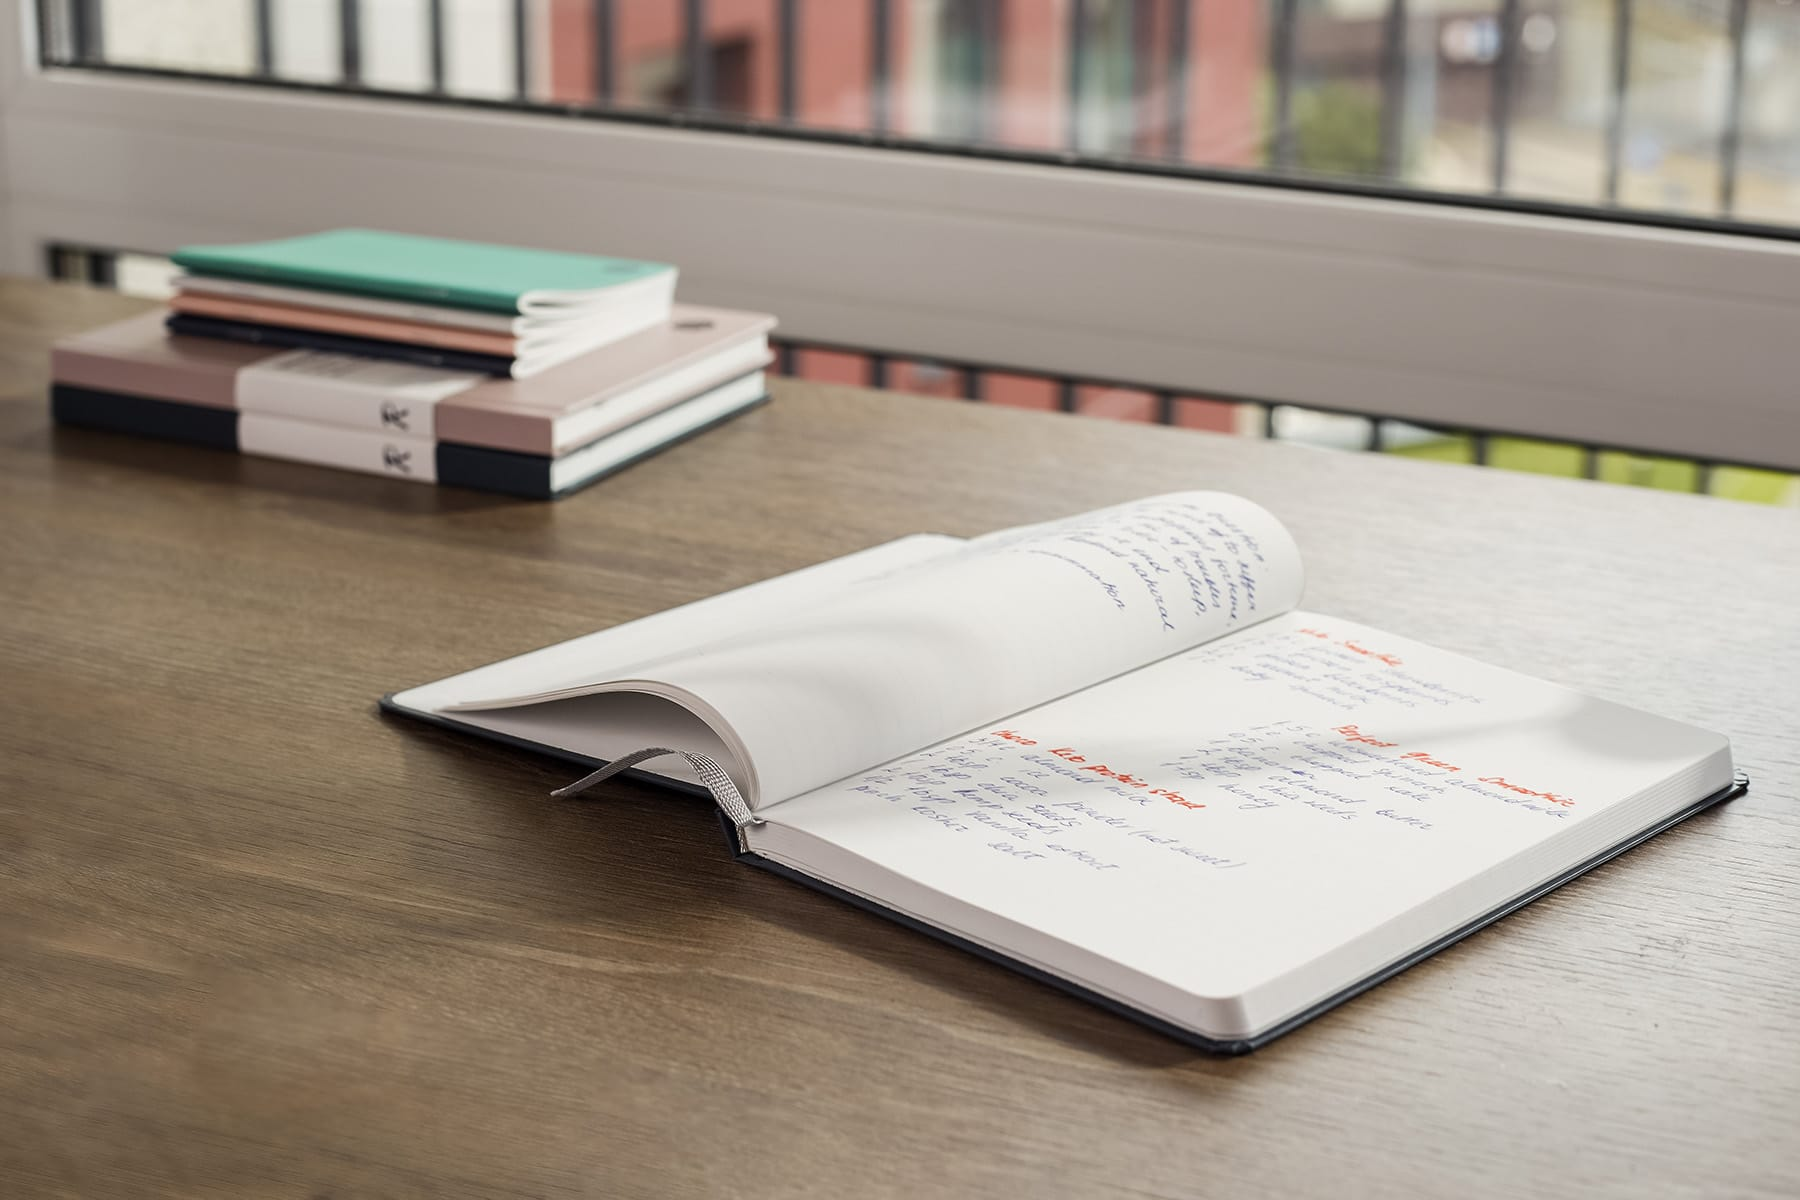 Reasons to use stone paper notebooks